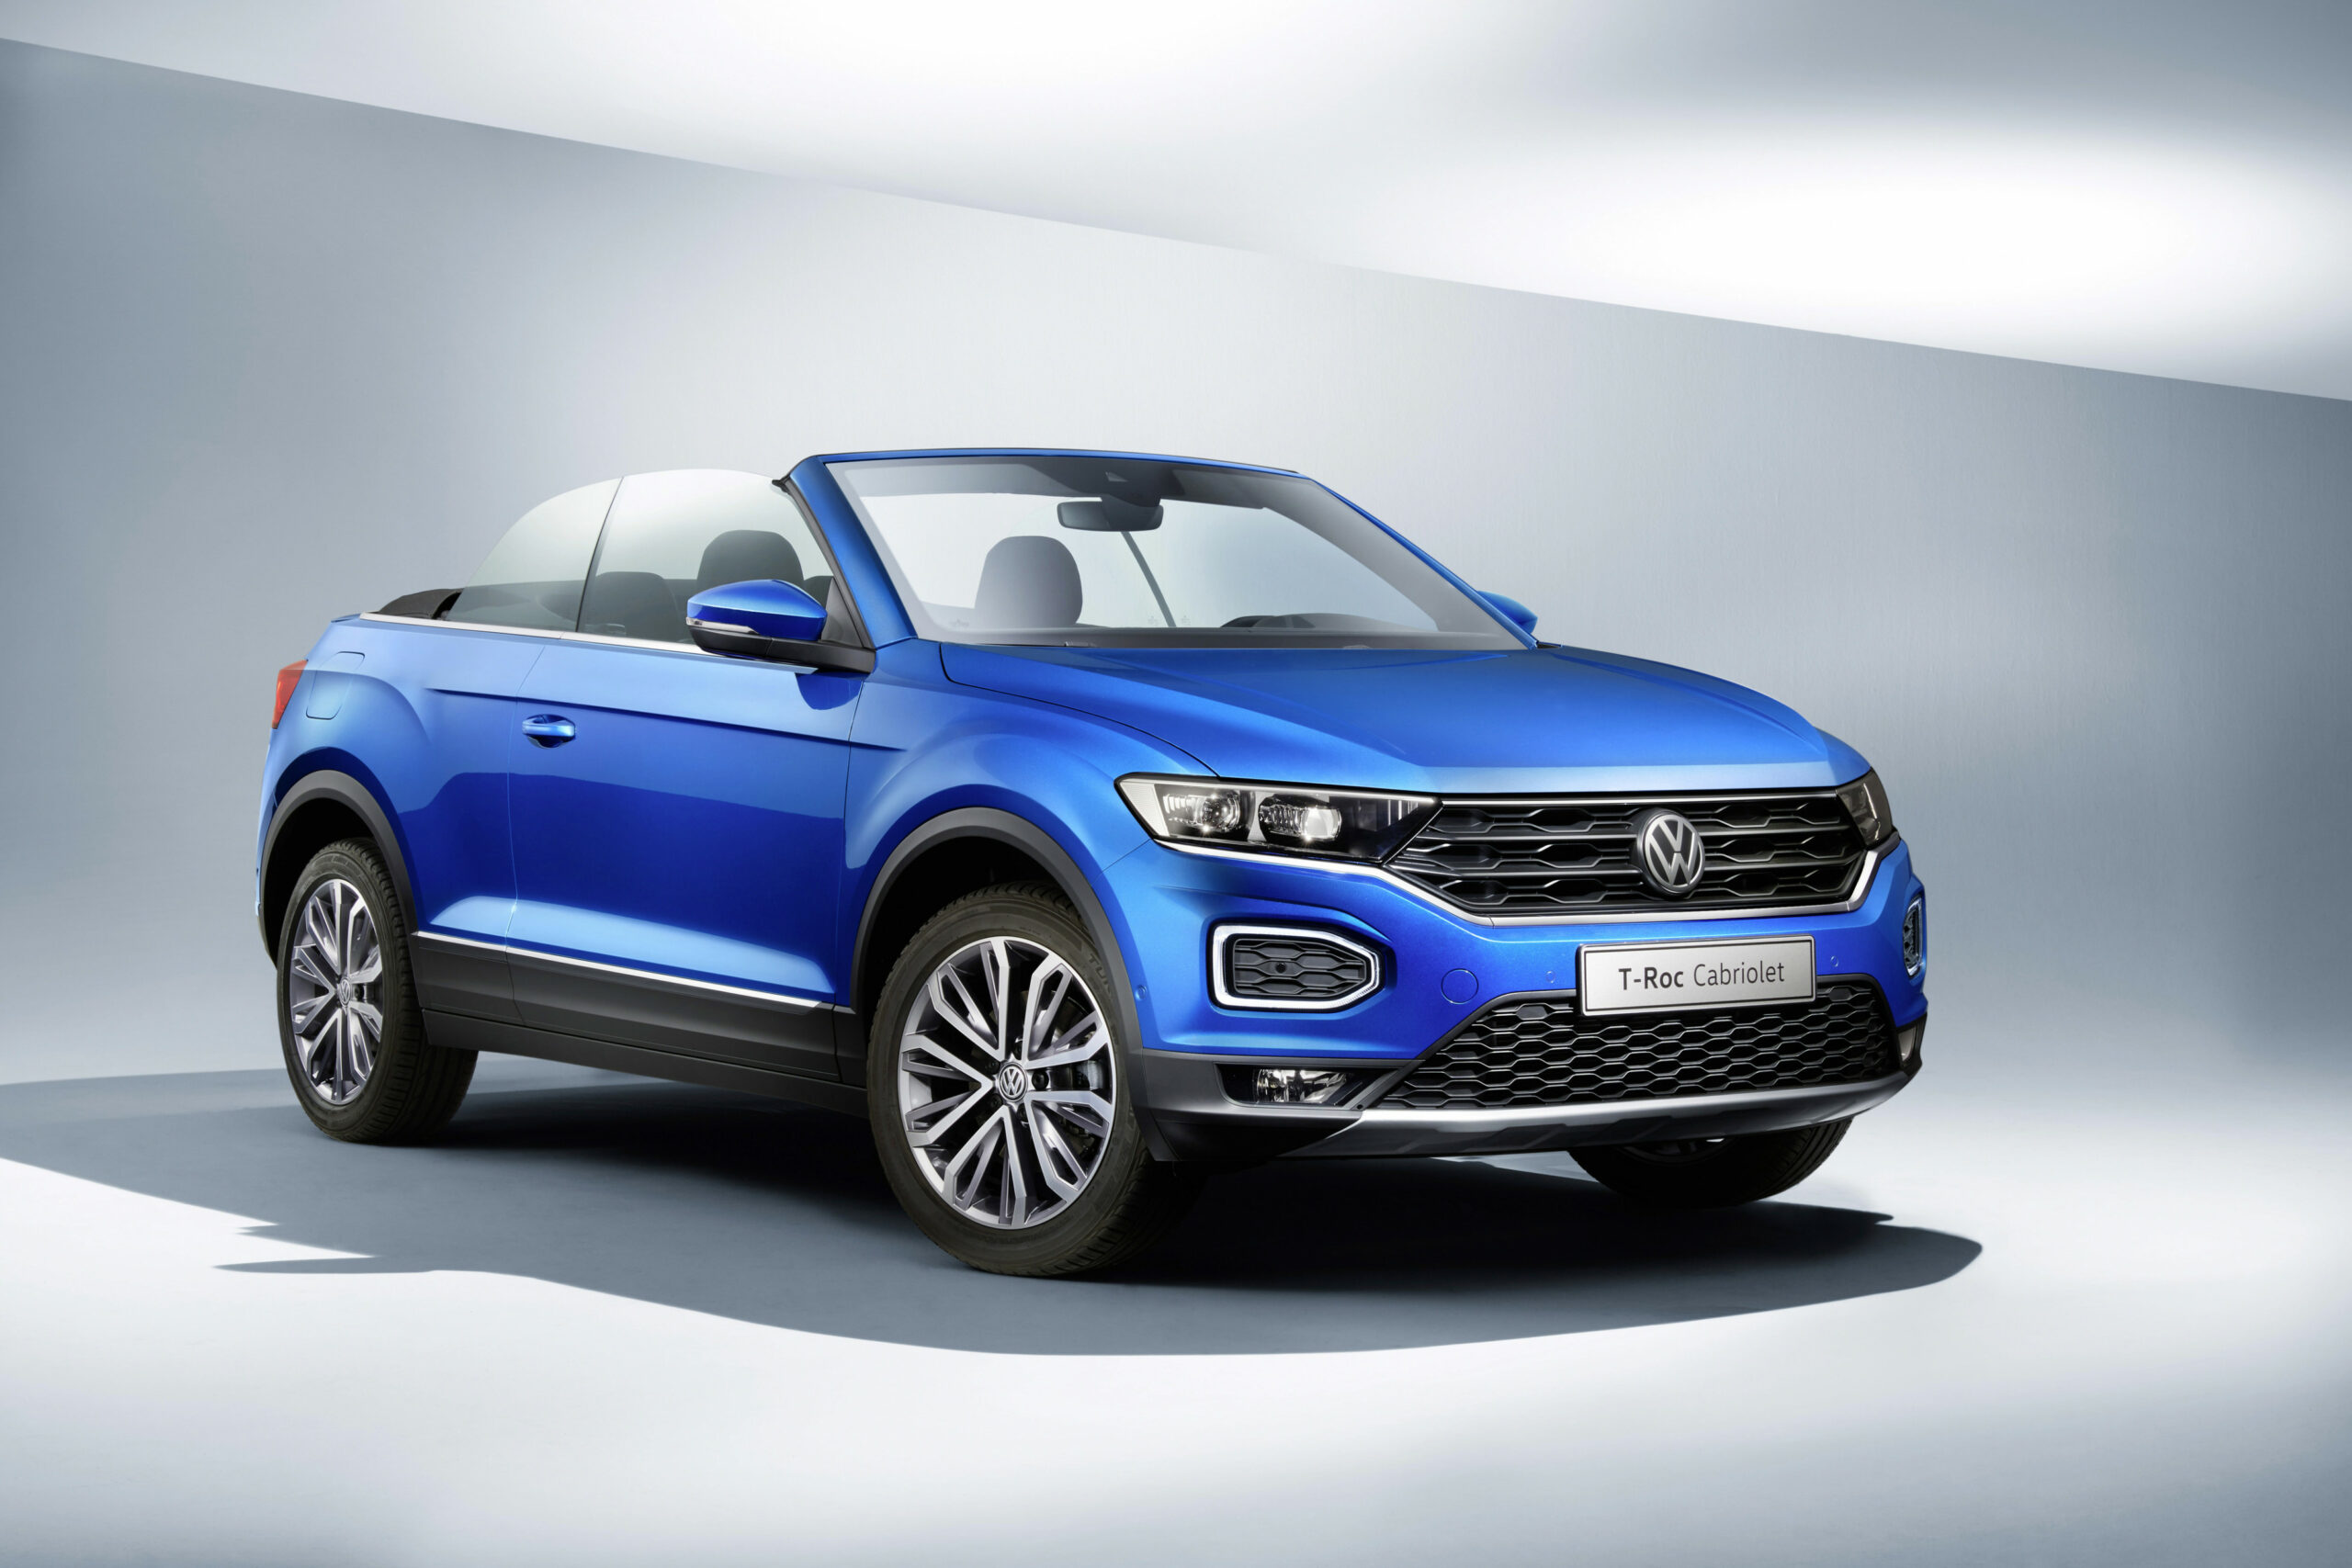 The 10 Volkswagen T-Roc Cabriolet Is Your New Small High-riding ..